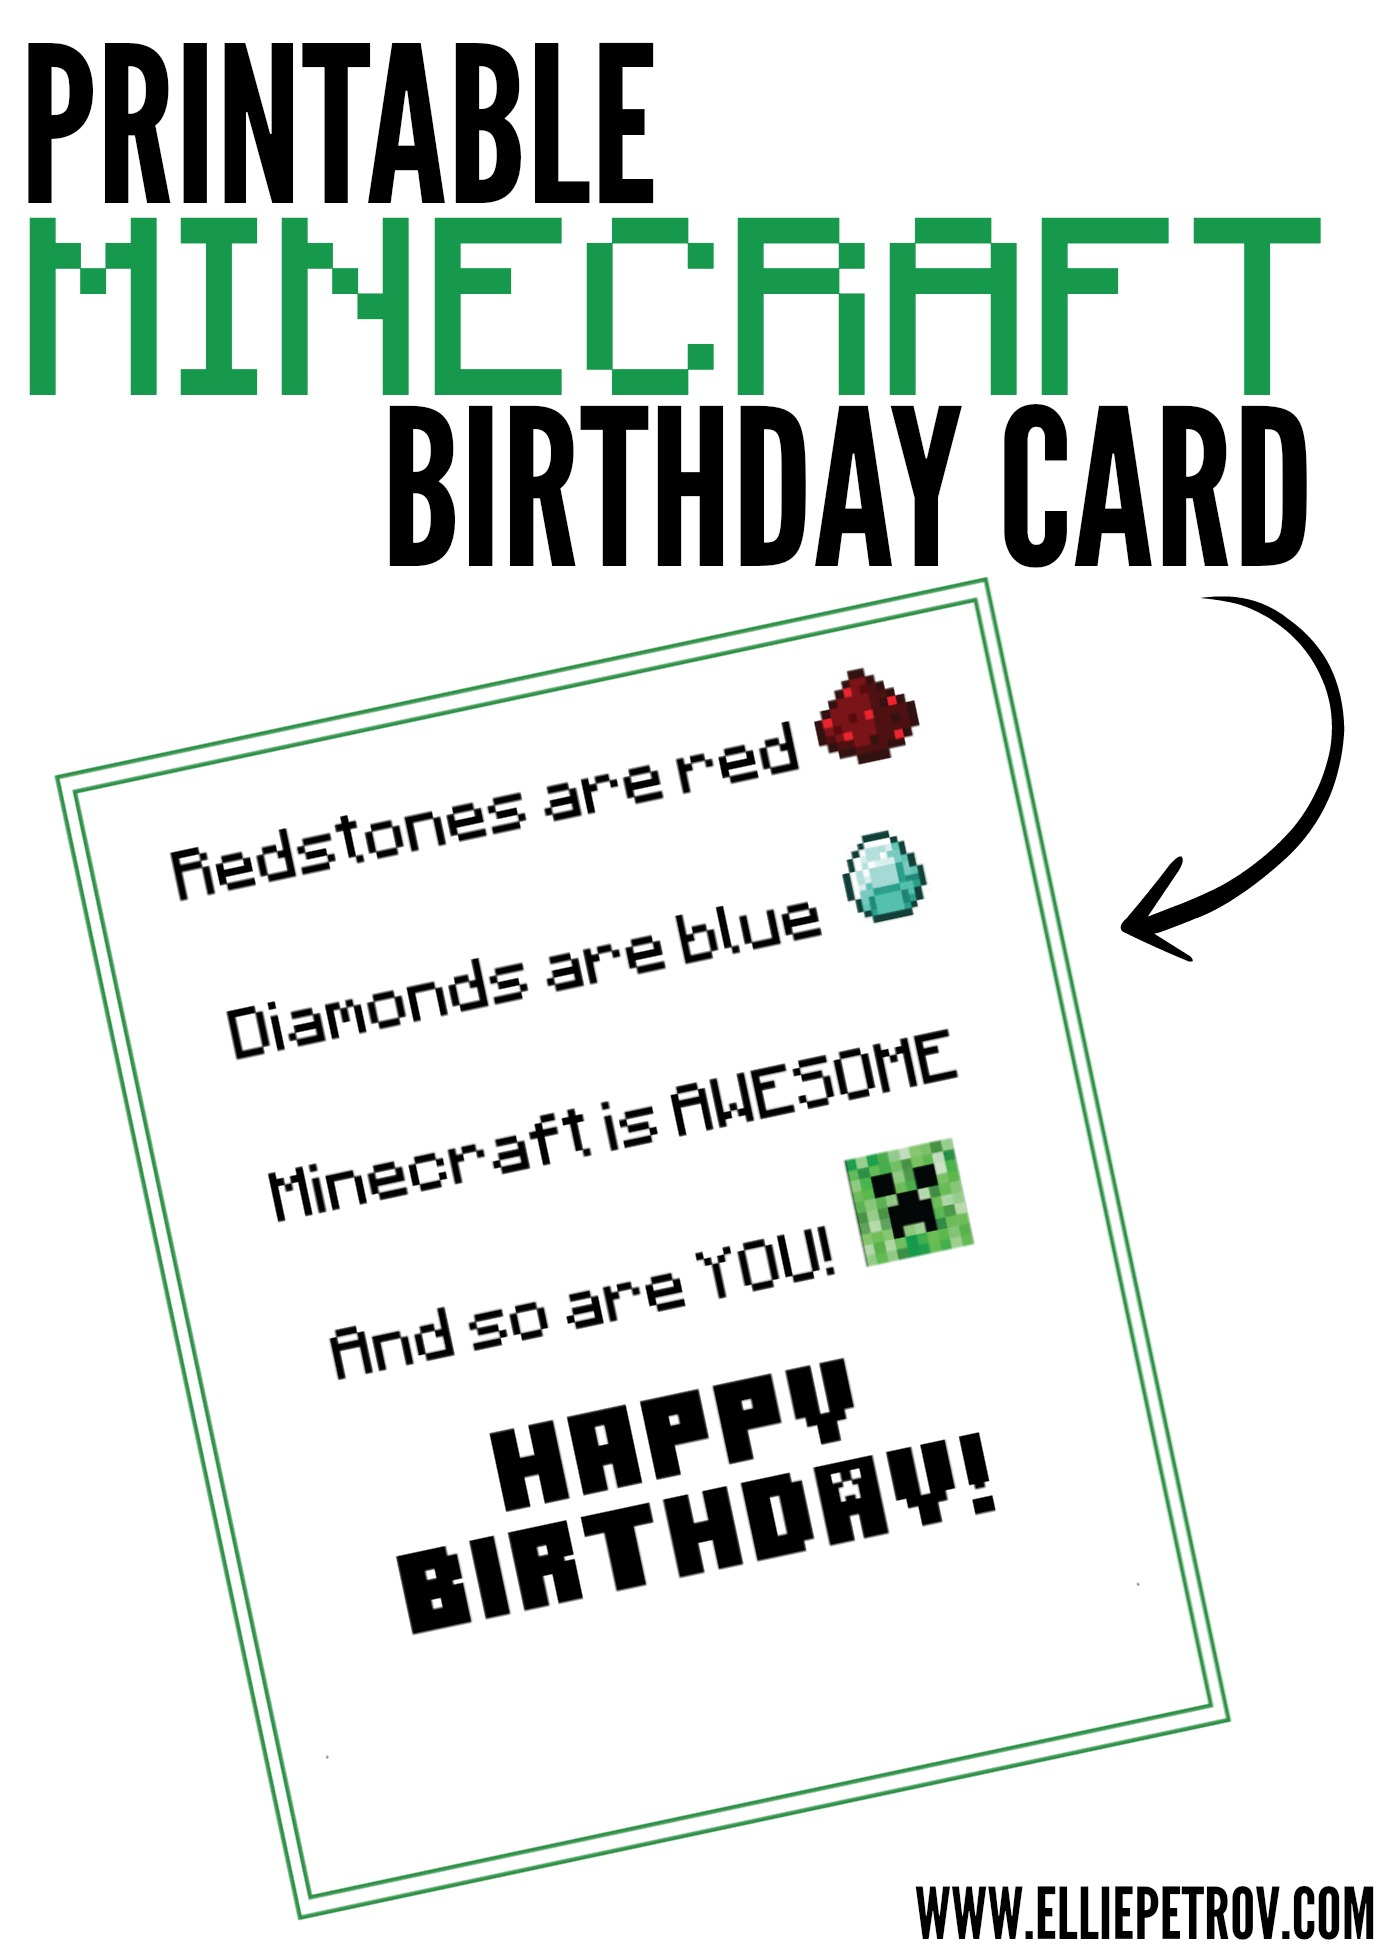 free printable birthday cards for best friends ; free-printable-birthday-cards-for-best-friends-best-of-minecraft-birthday-party-to-go-of-free-printable-birthday-cards-for-best-friends